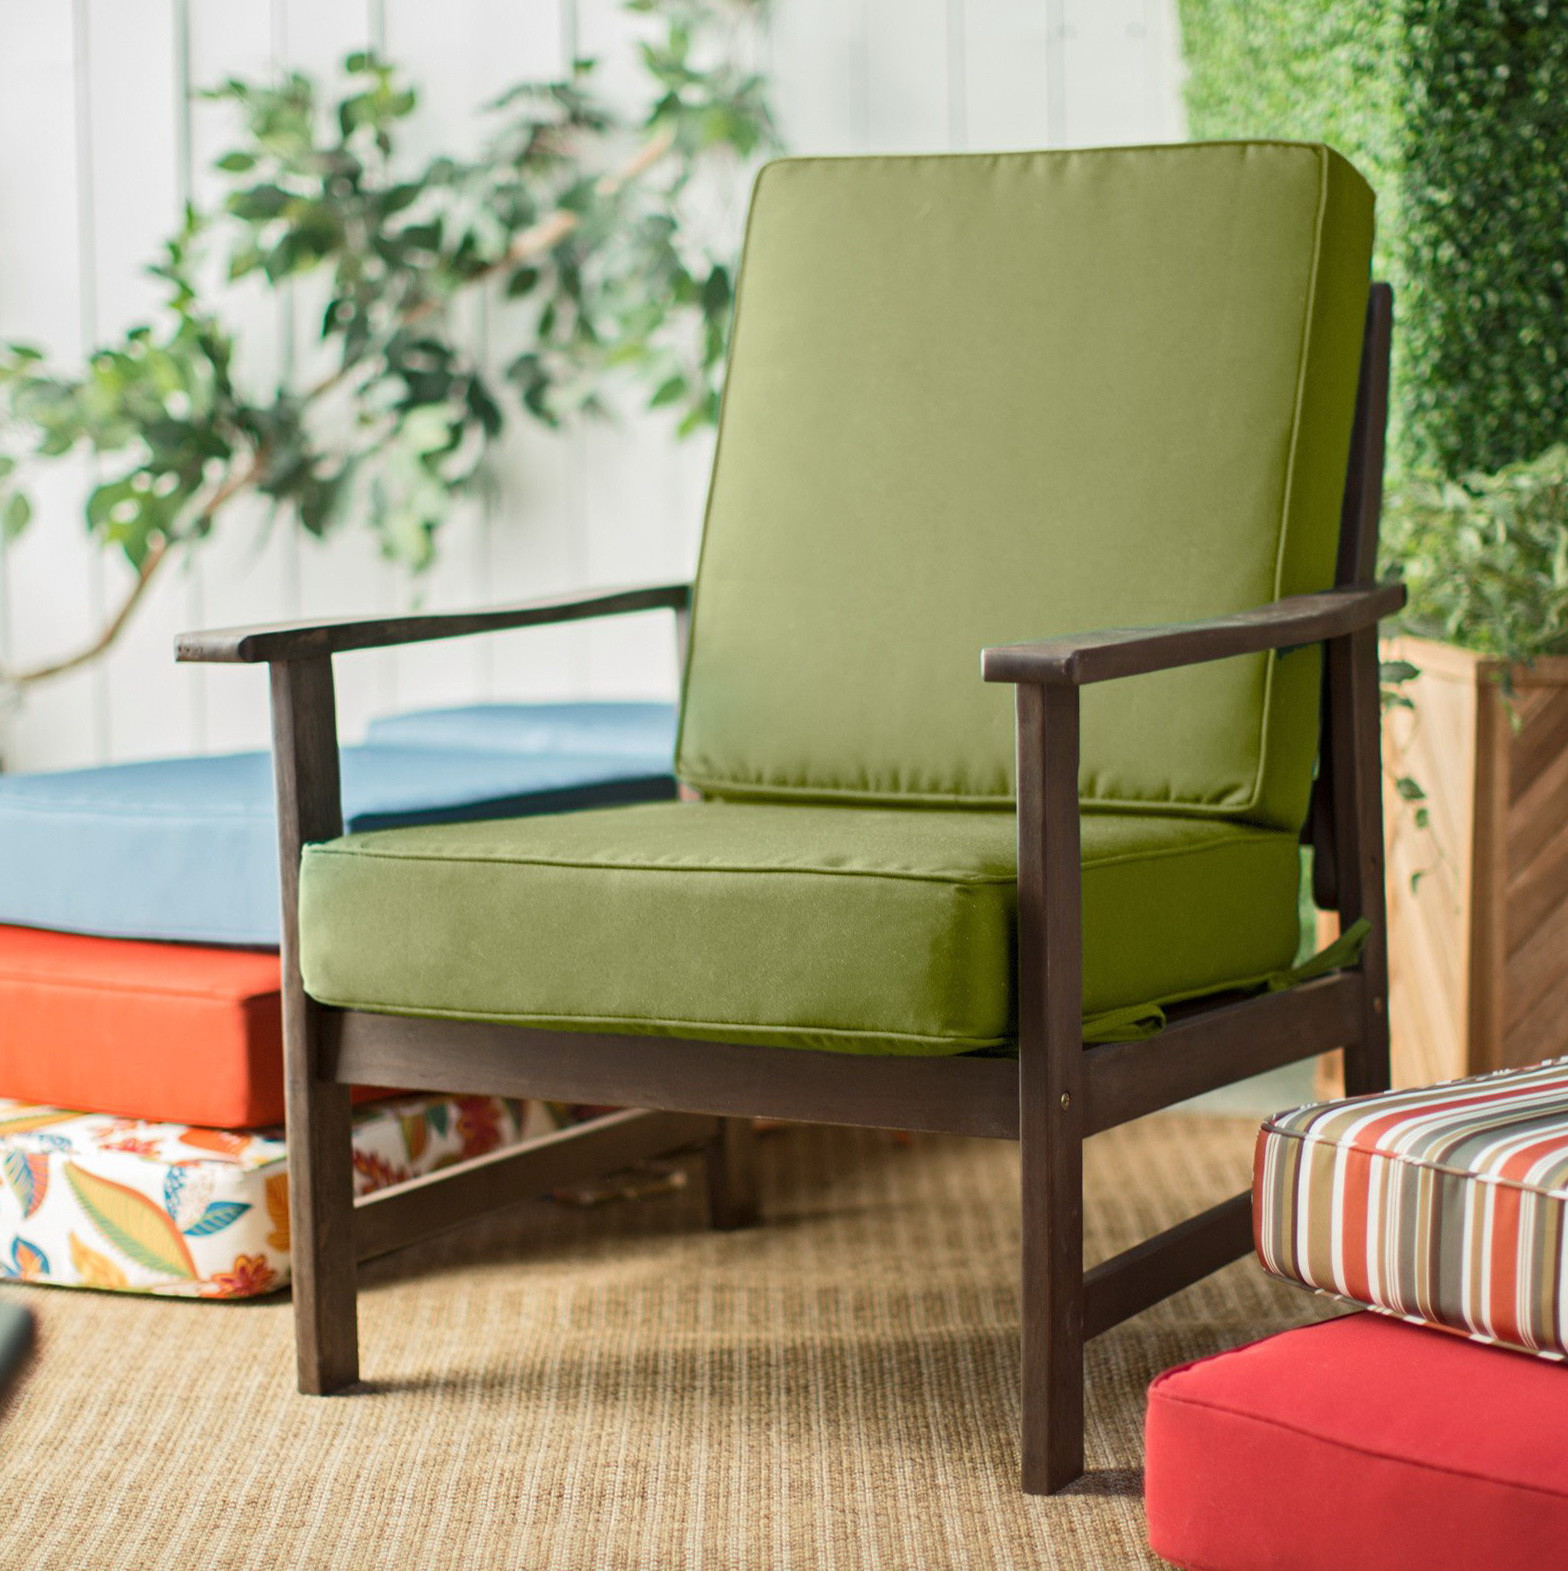 Best ideas about Walmart Patio Cushions Clearance . Save or Pin Walmart Outdoor Chair Cushions Clearance Now.